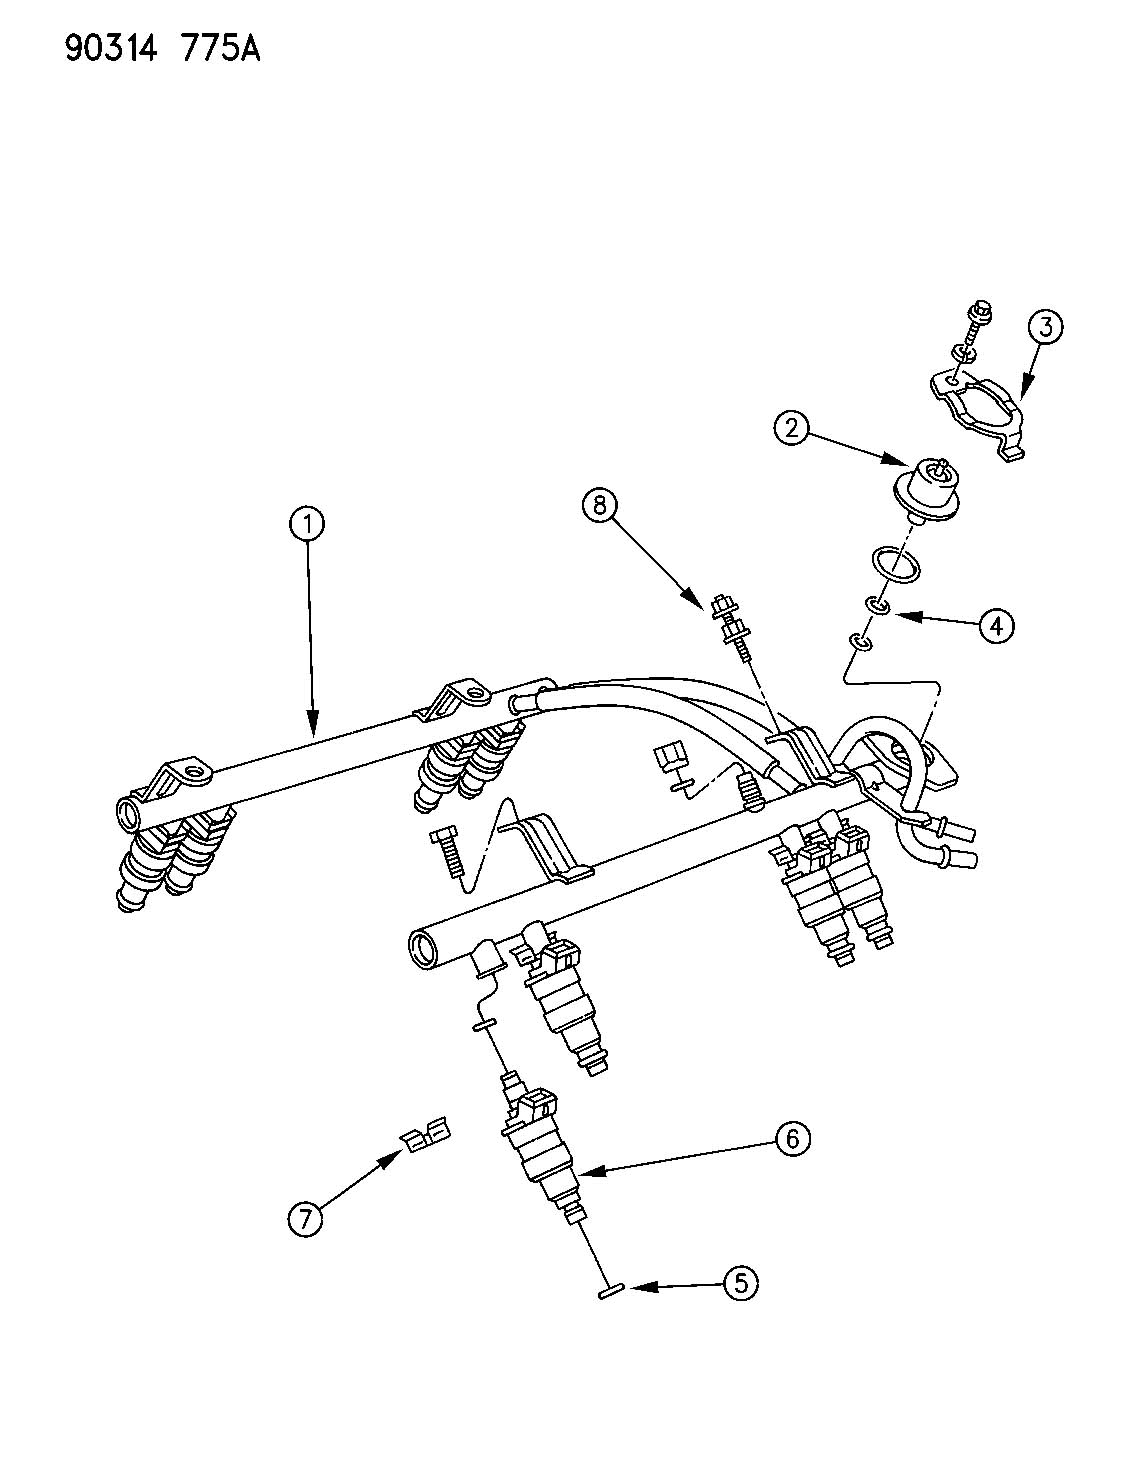 1993 Dodge Dakota FUEL RAIL 3.9L AND 5.2L AND 5.9L ENGINE